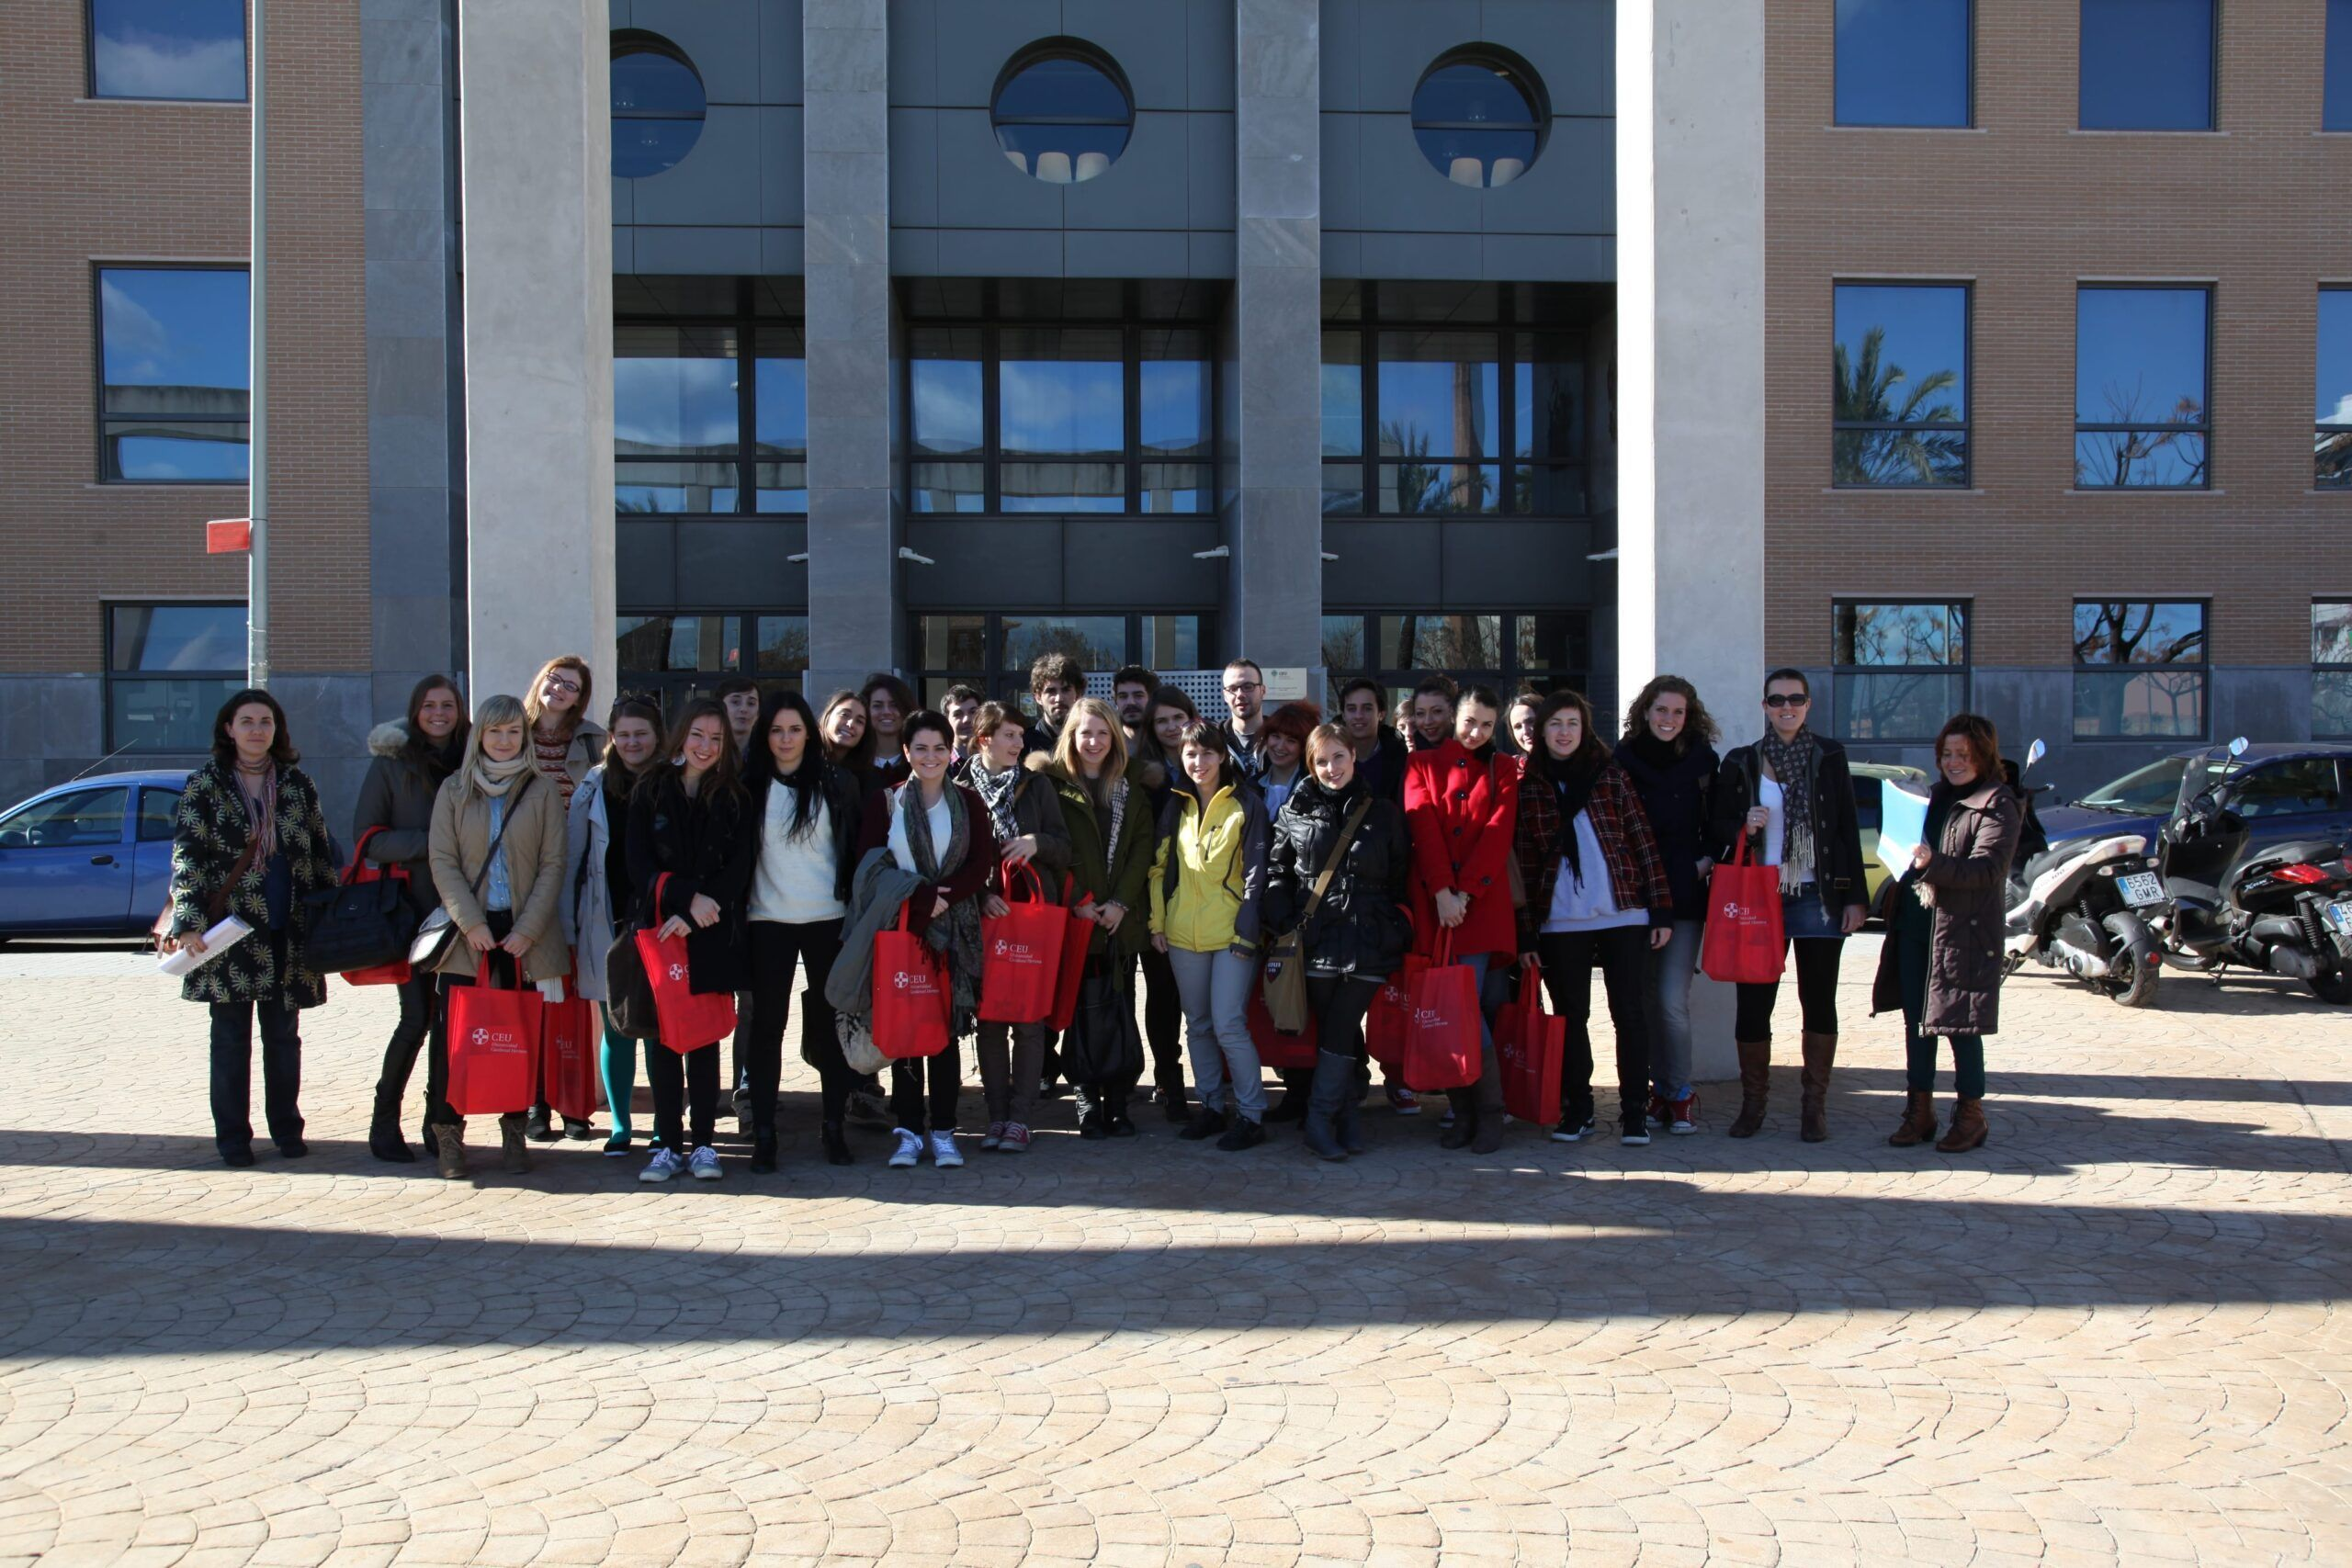 Is a tradition. We make the picture to the erasmus group during the welcome day!